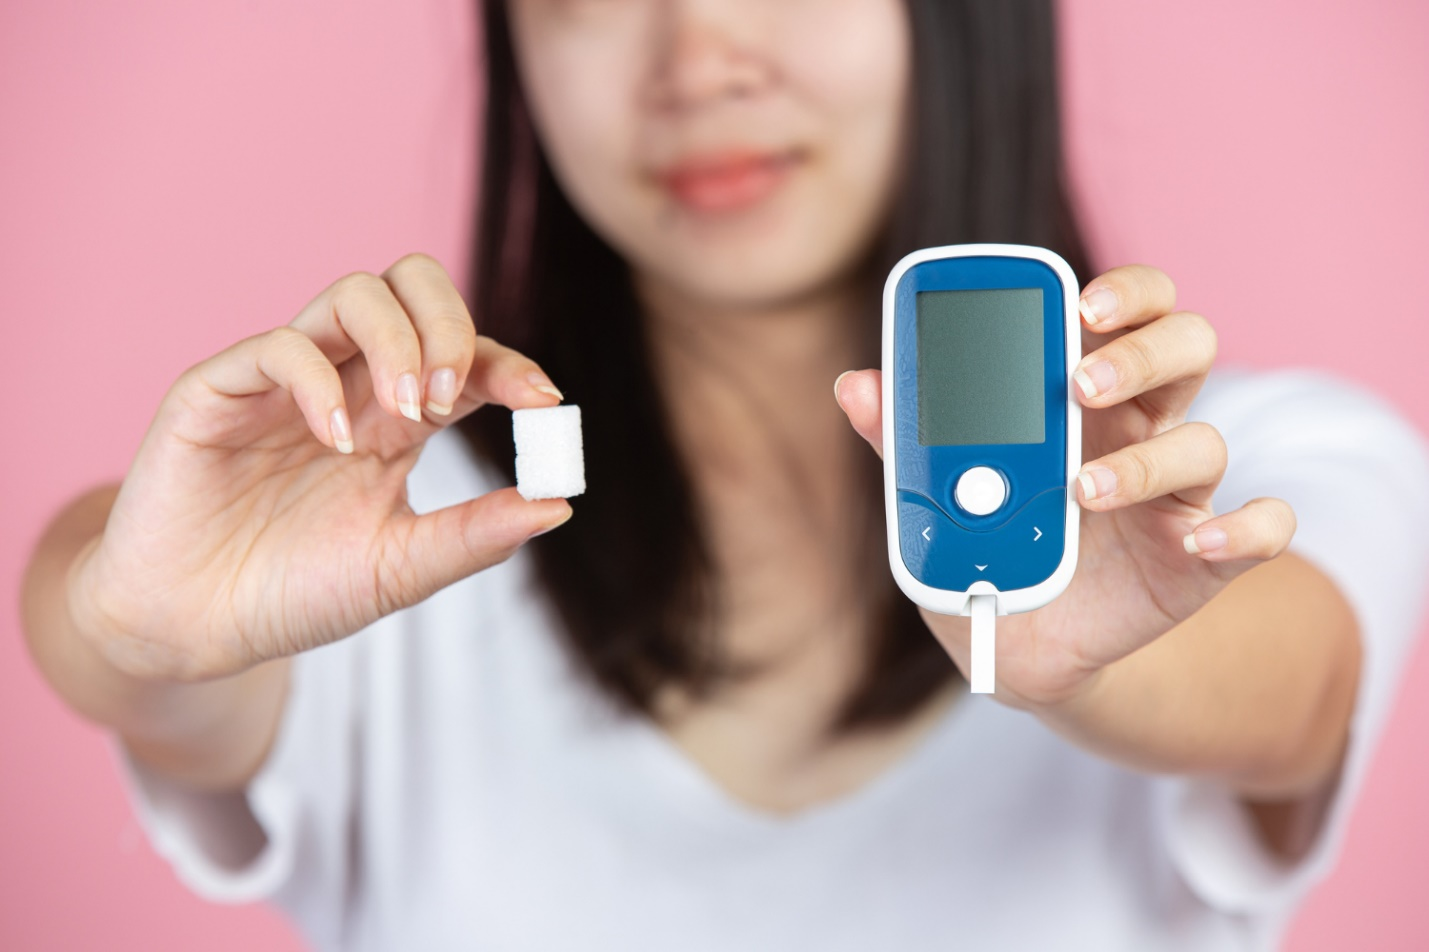 C:\Users\Dell\Downloads\world-diabetes-day-woman-holding-glucose-meter-sugar-cubes-pink-wall.jpg